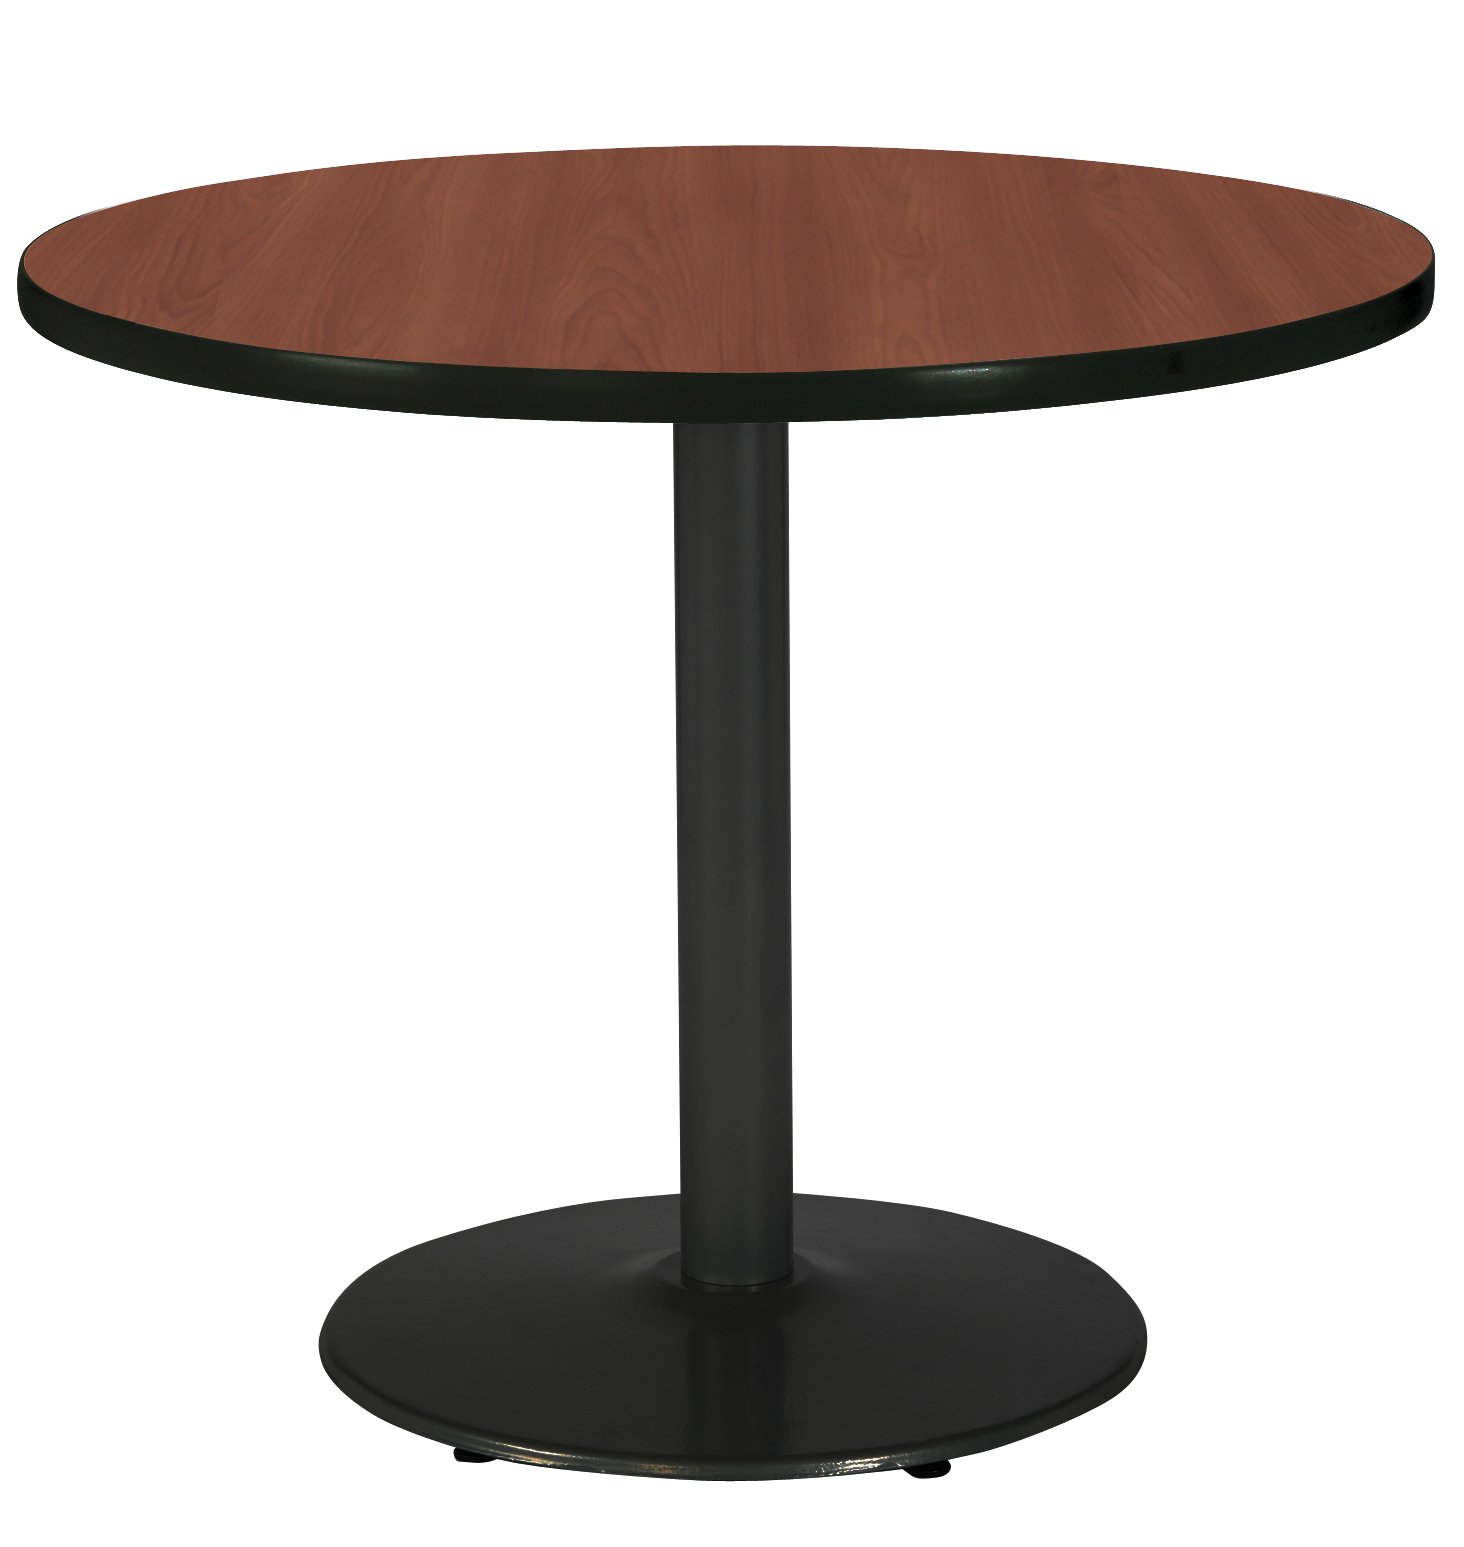 KFI Seating Round Black Base Pedestal Table with Top, Mahogany, 30''